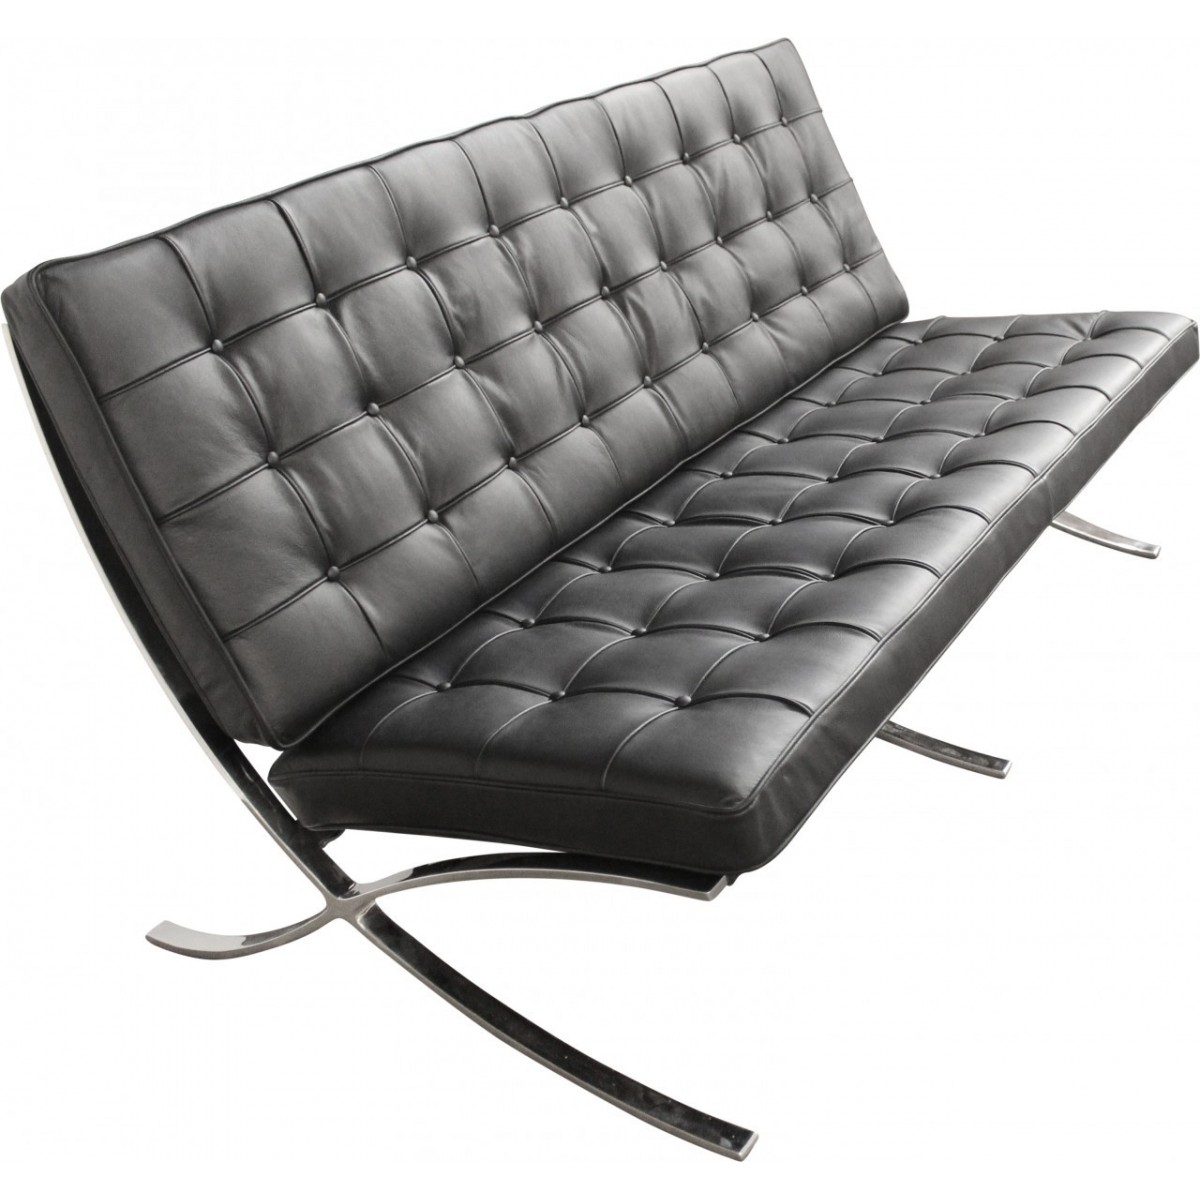 ludwig mies van der rohe barcelona style two seater sofa black leather. Black Bedroom Furniture Sets. Home Design Ideas